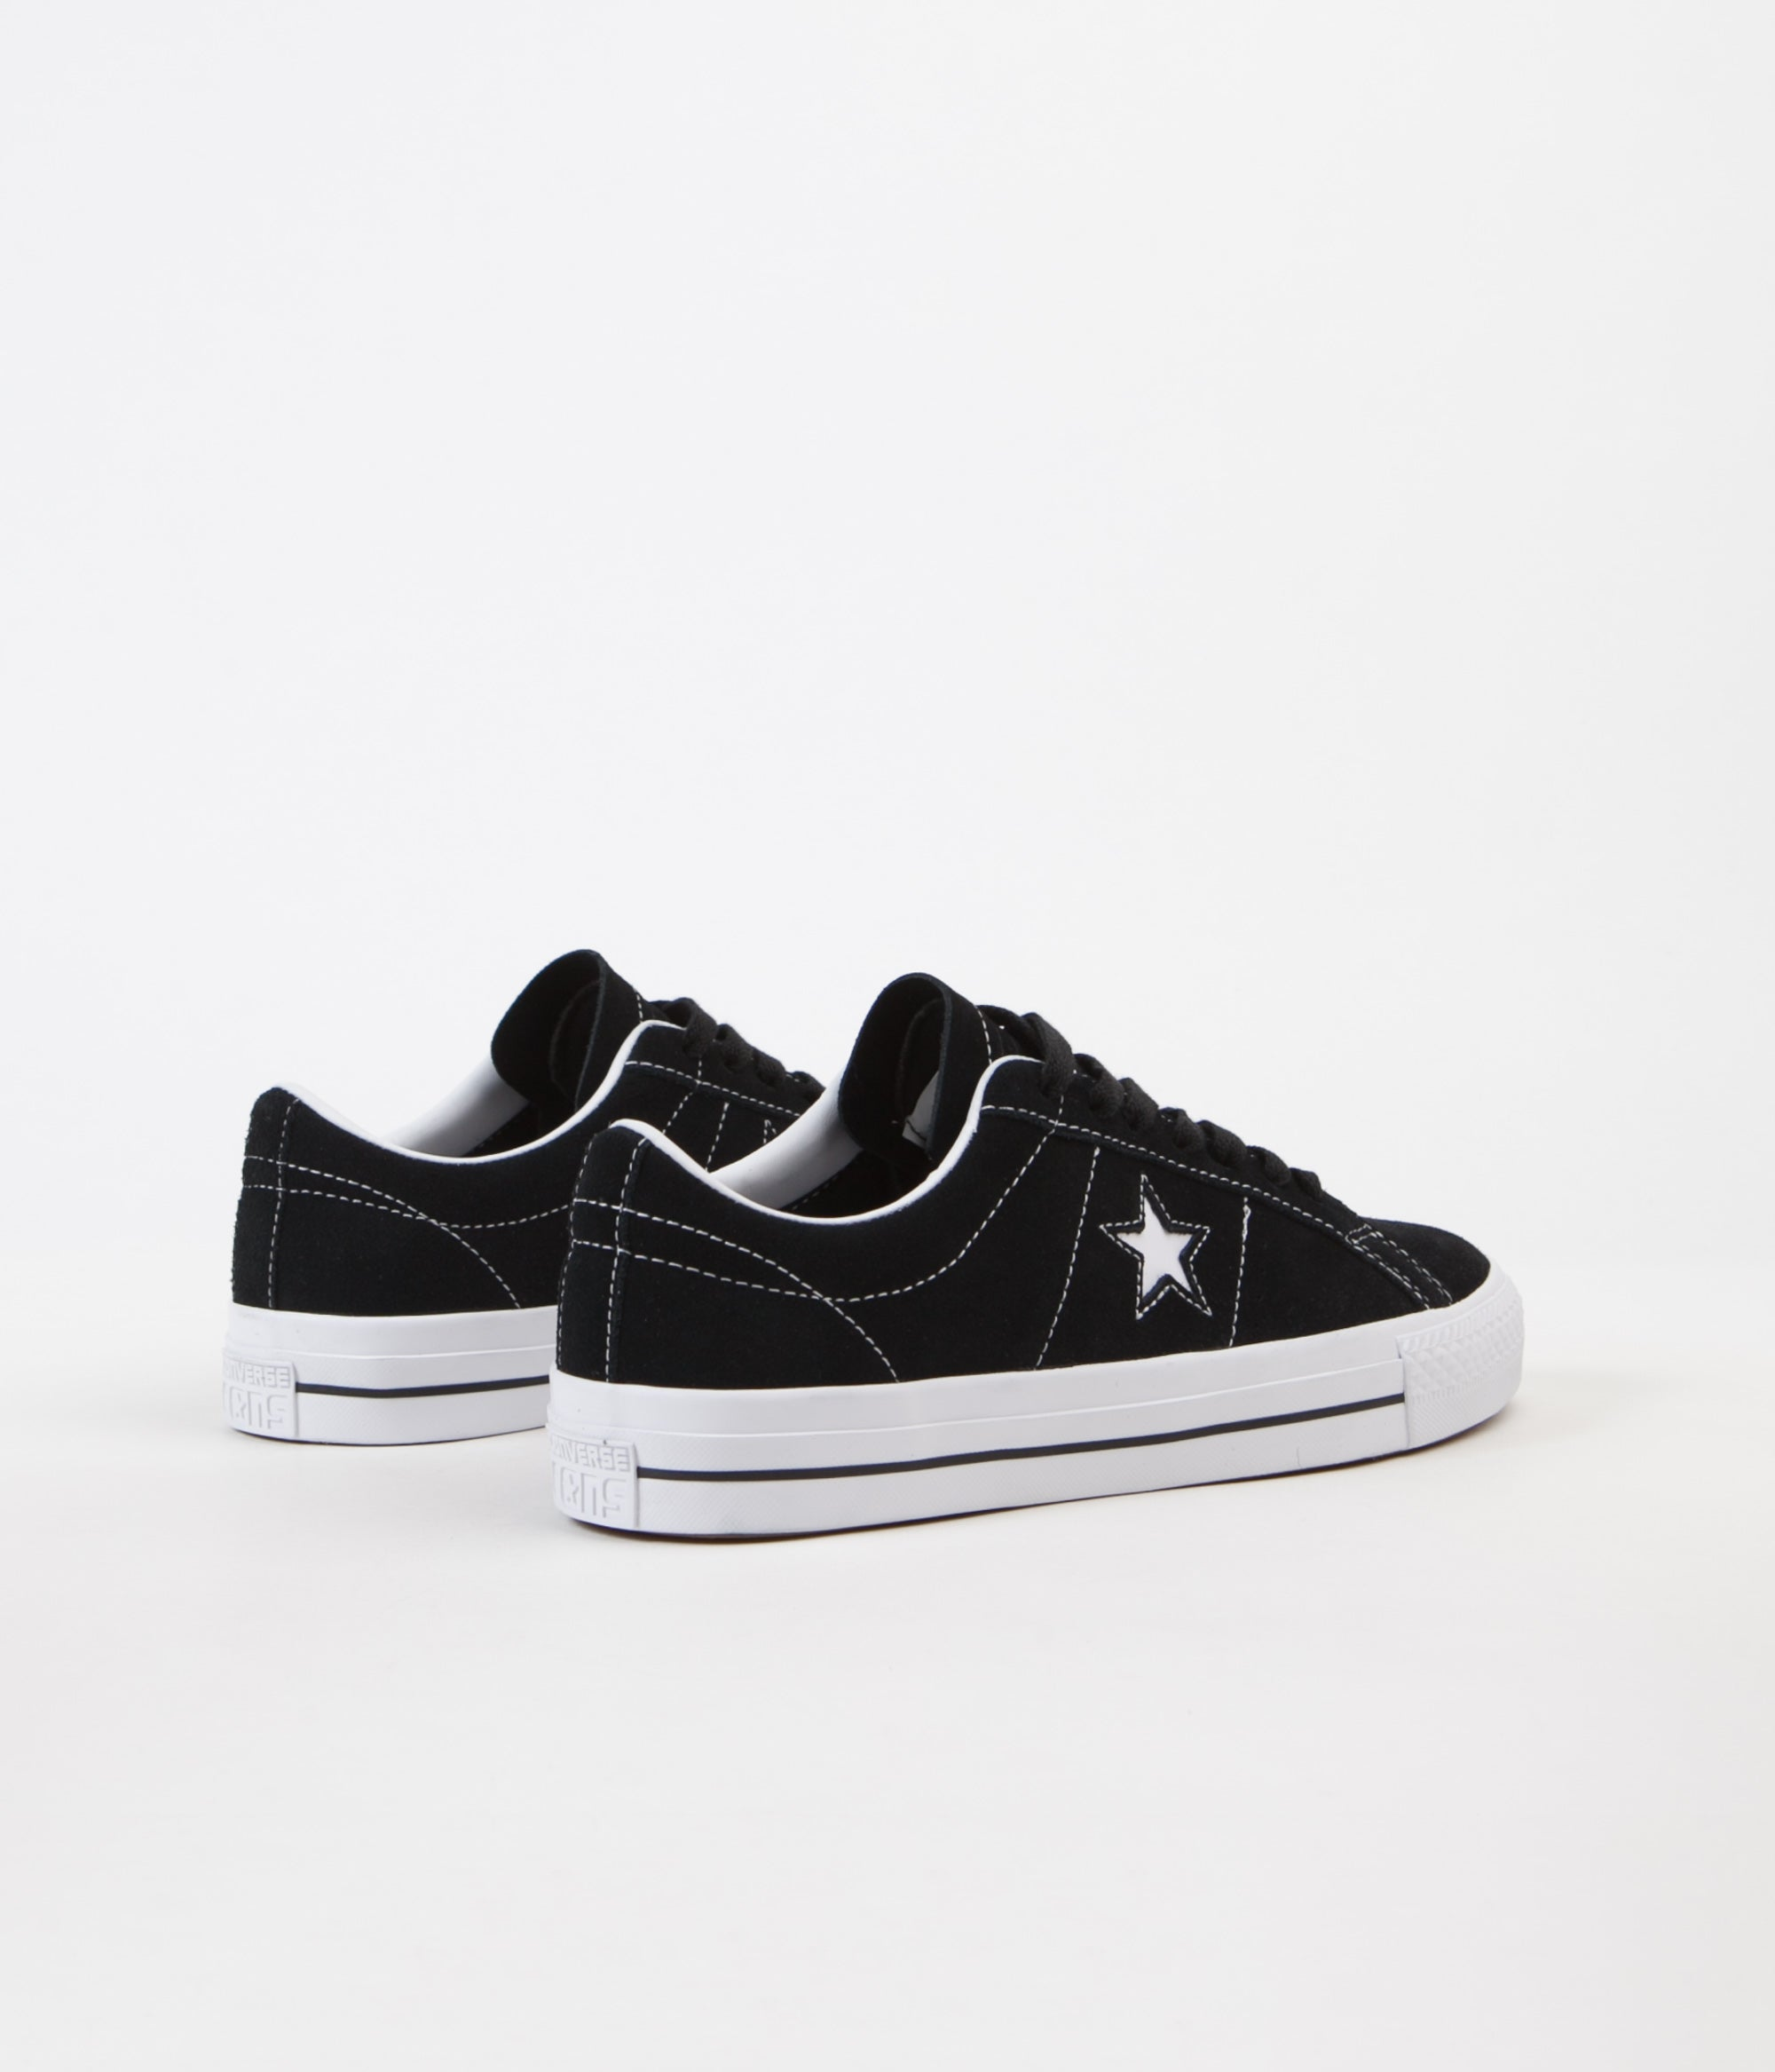 Converse One Star Pro Ox Shoes - Black / White / White